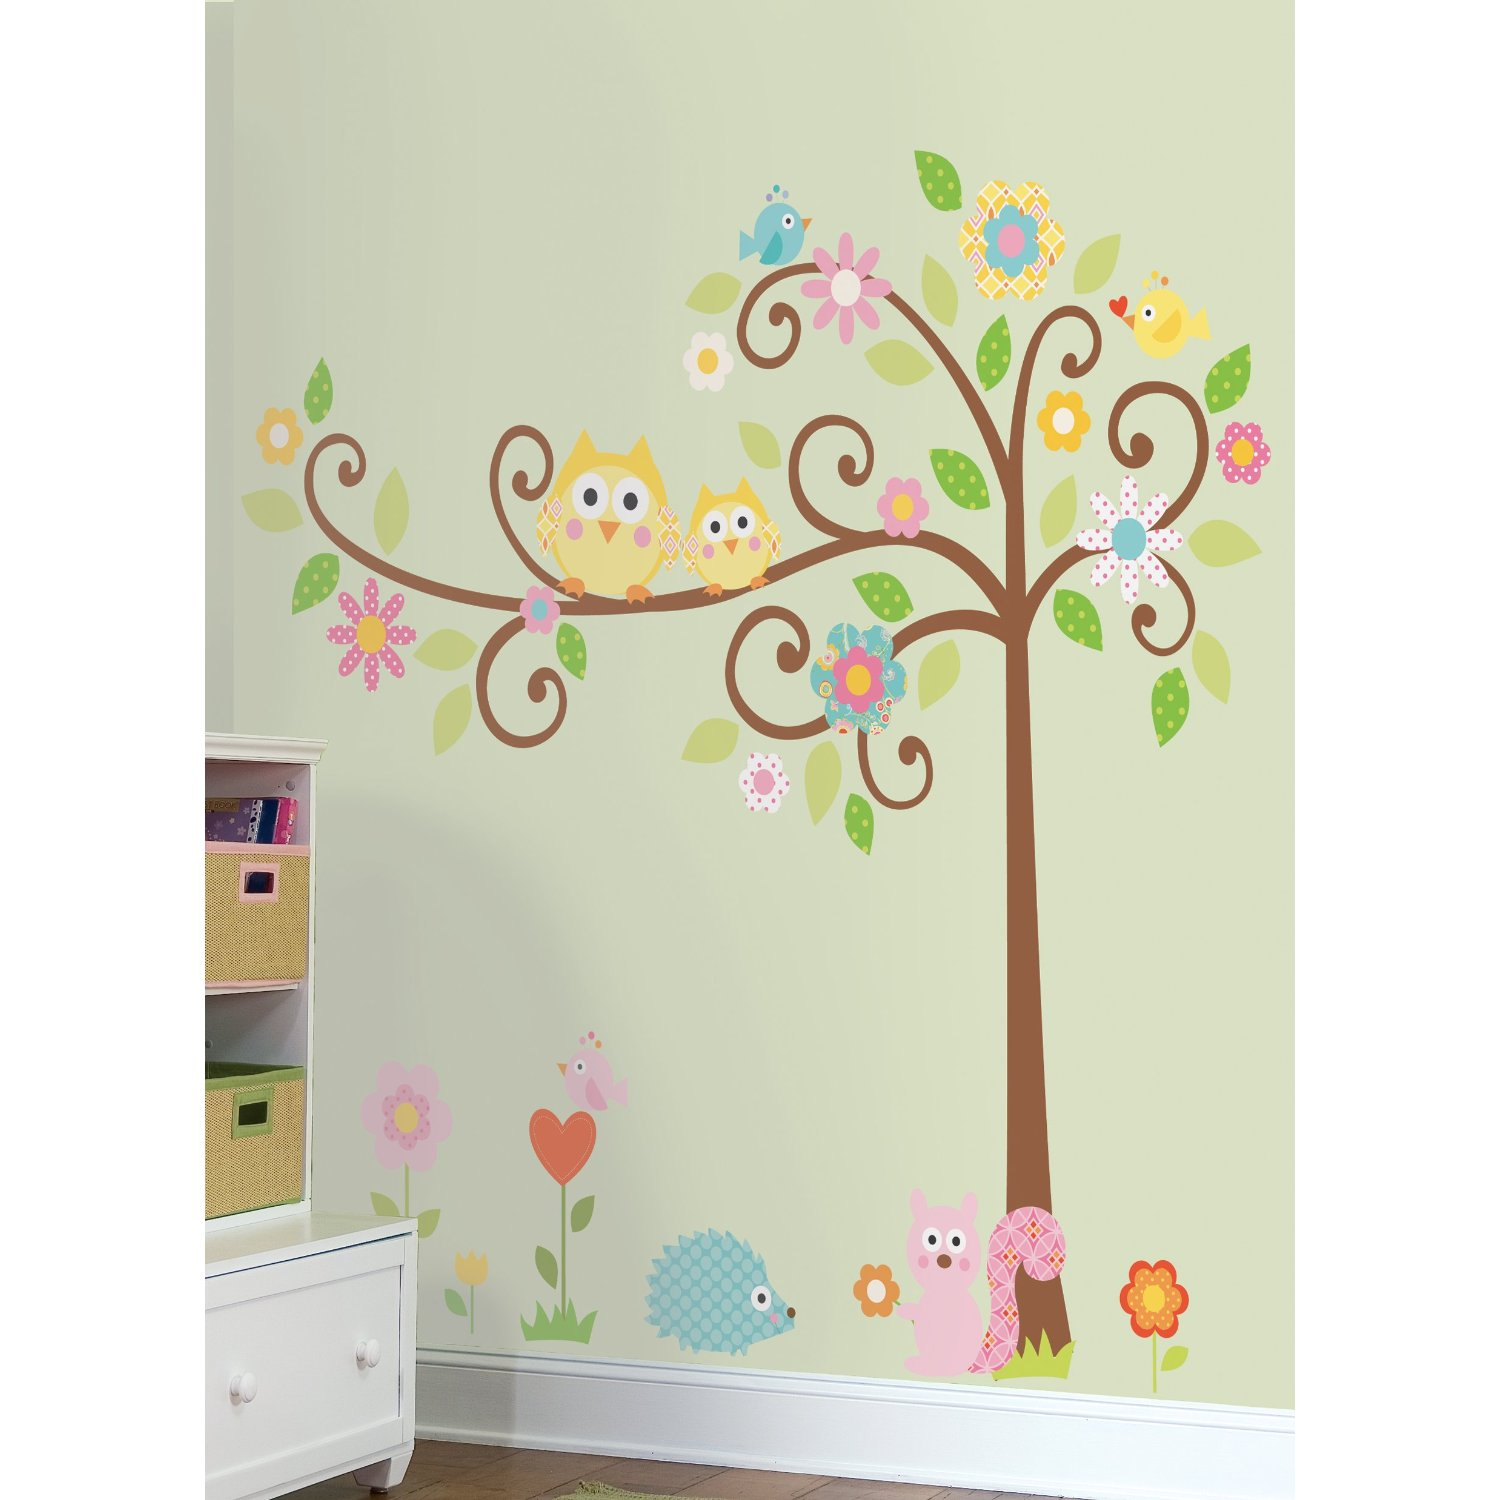 Wall Decor Stickers Nursery : Nursery room ideas wall decals